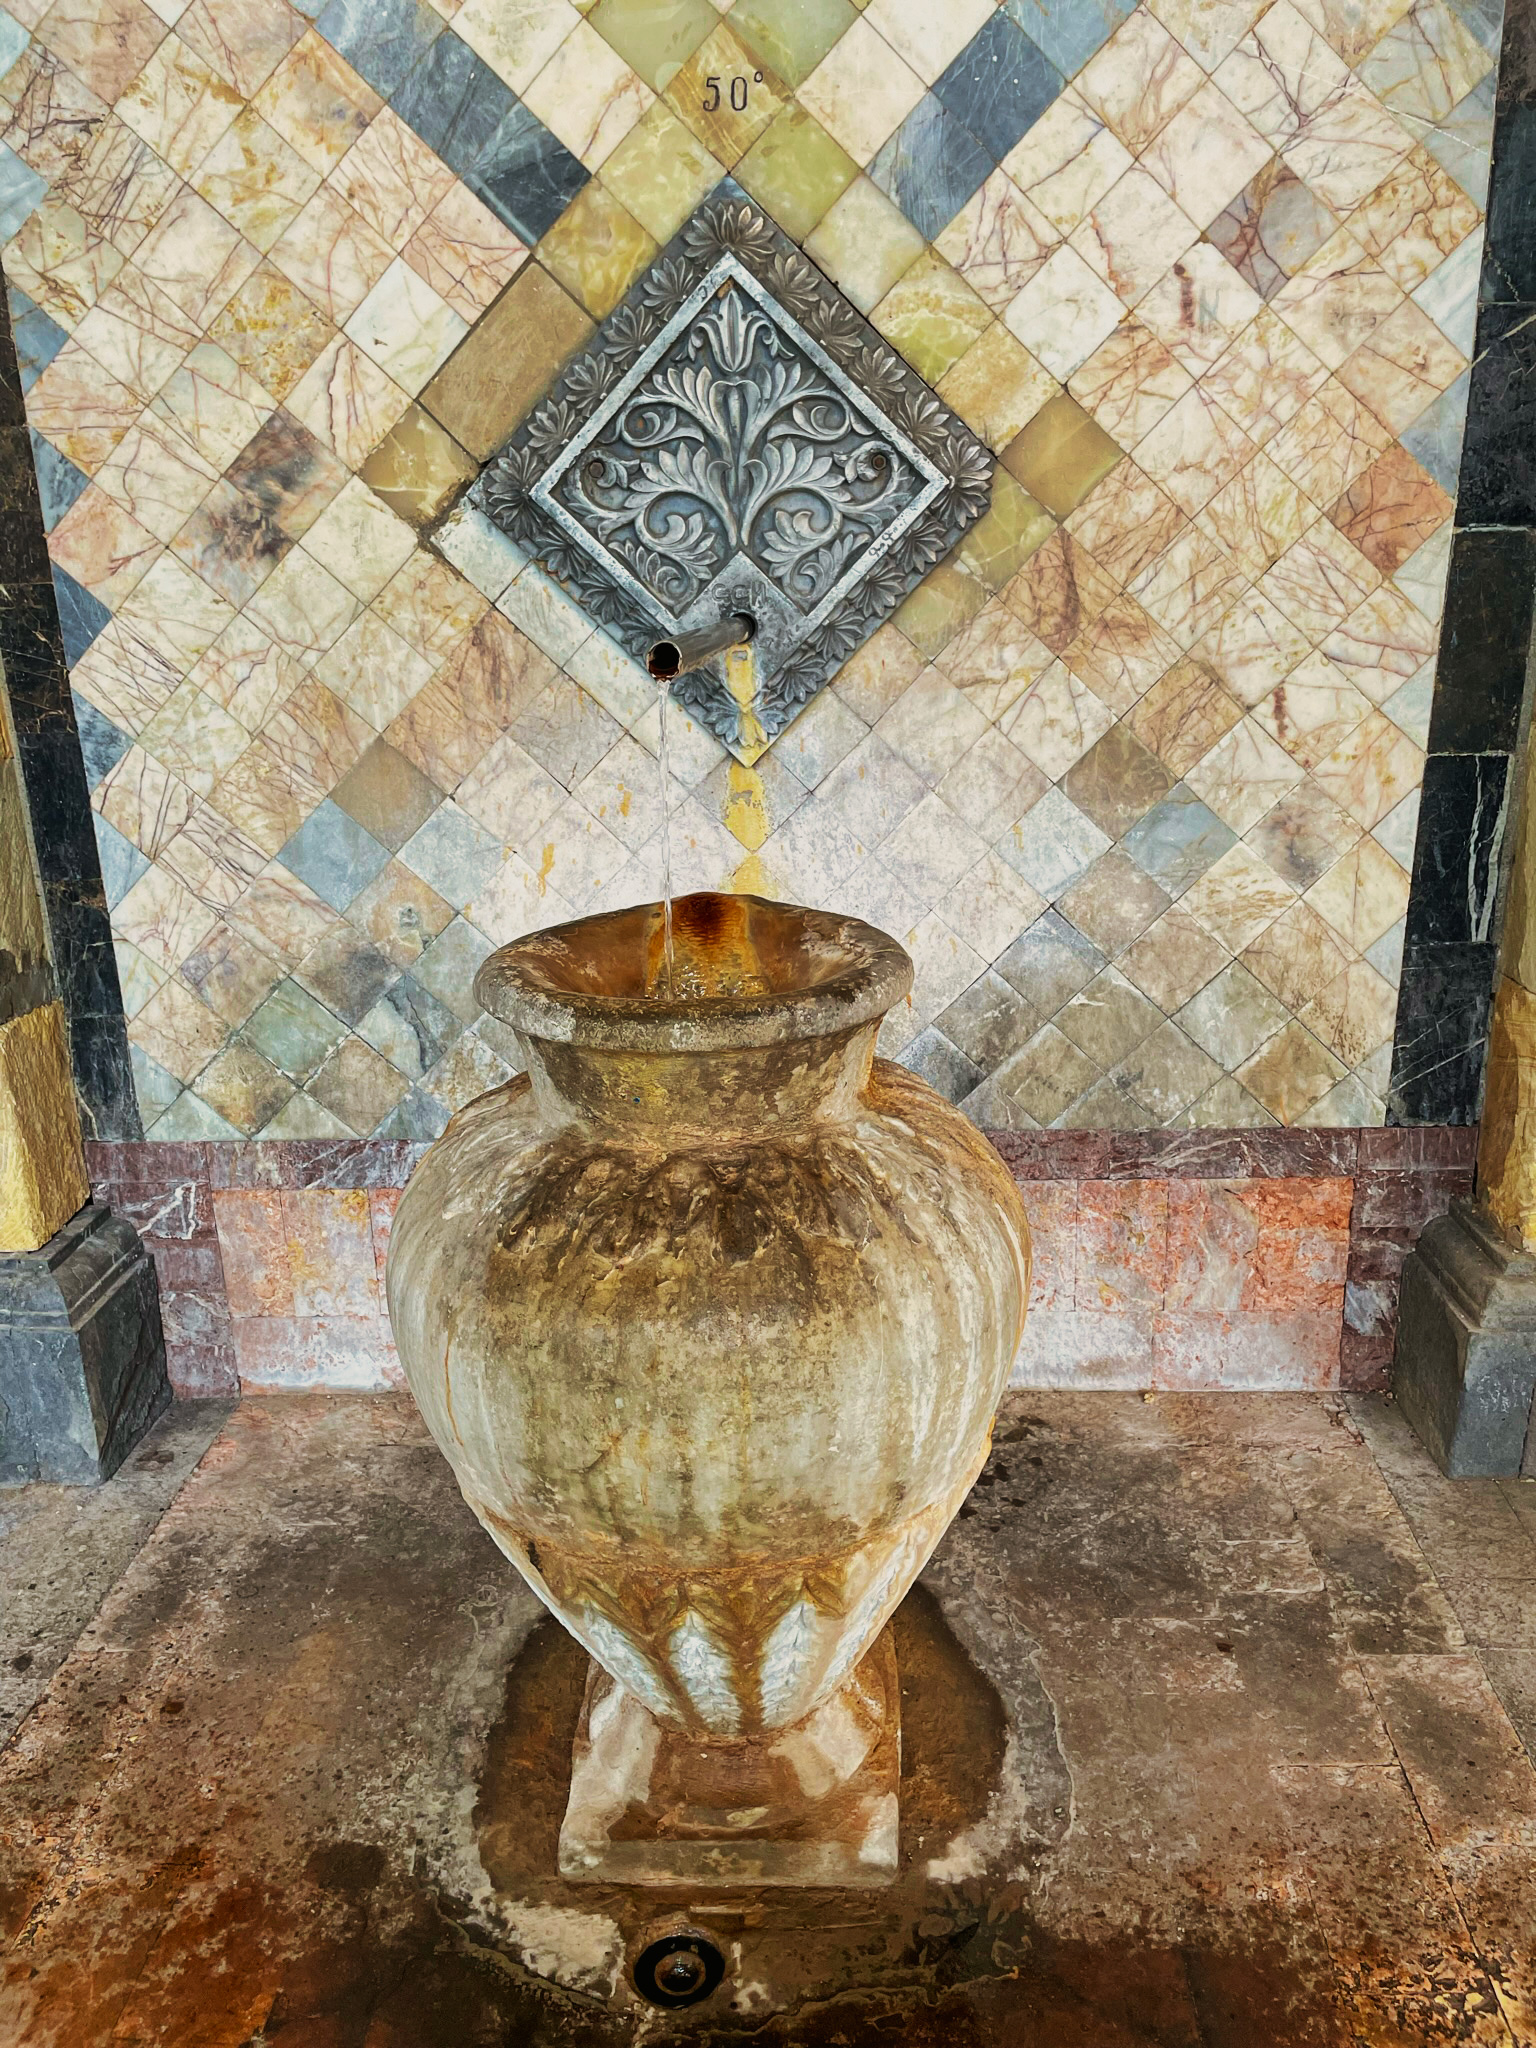 Mineral water gallery, Jermuk